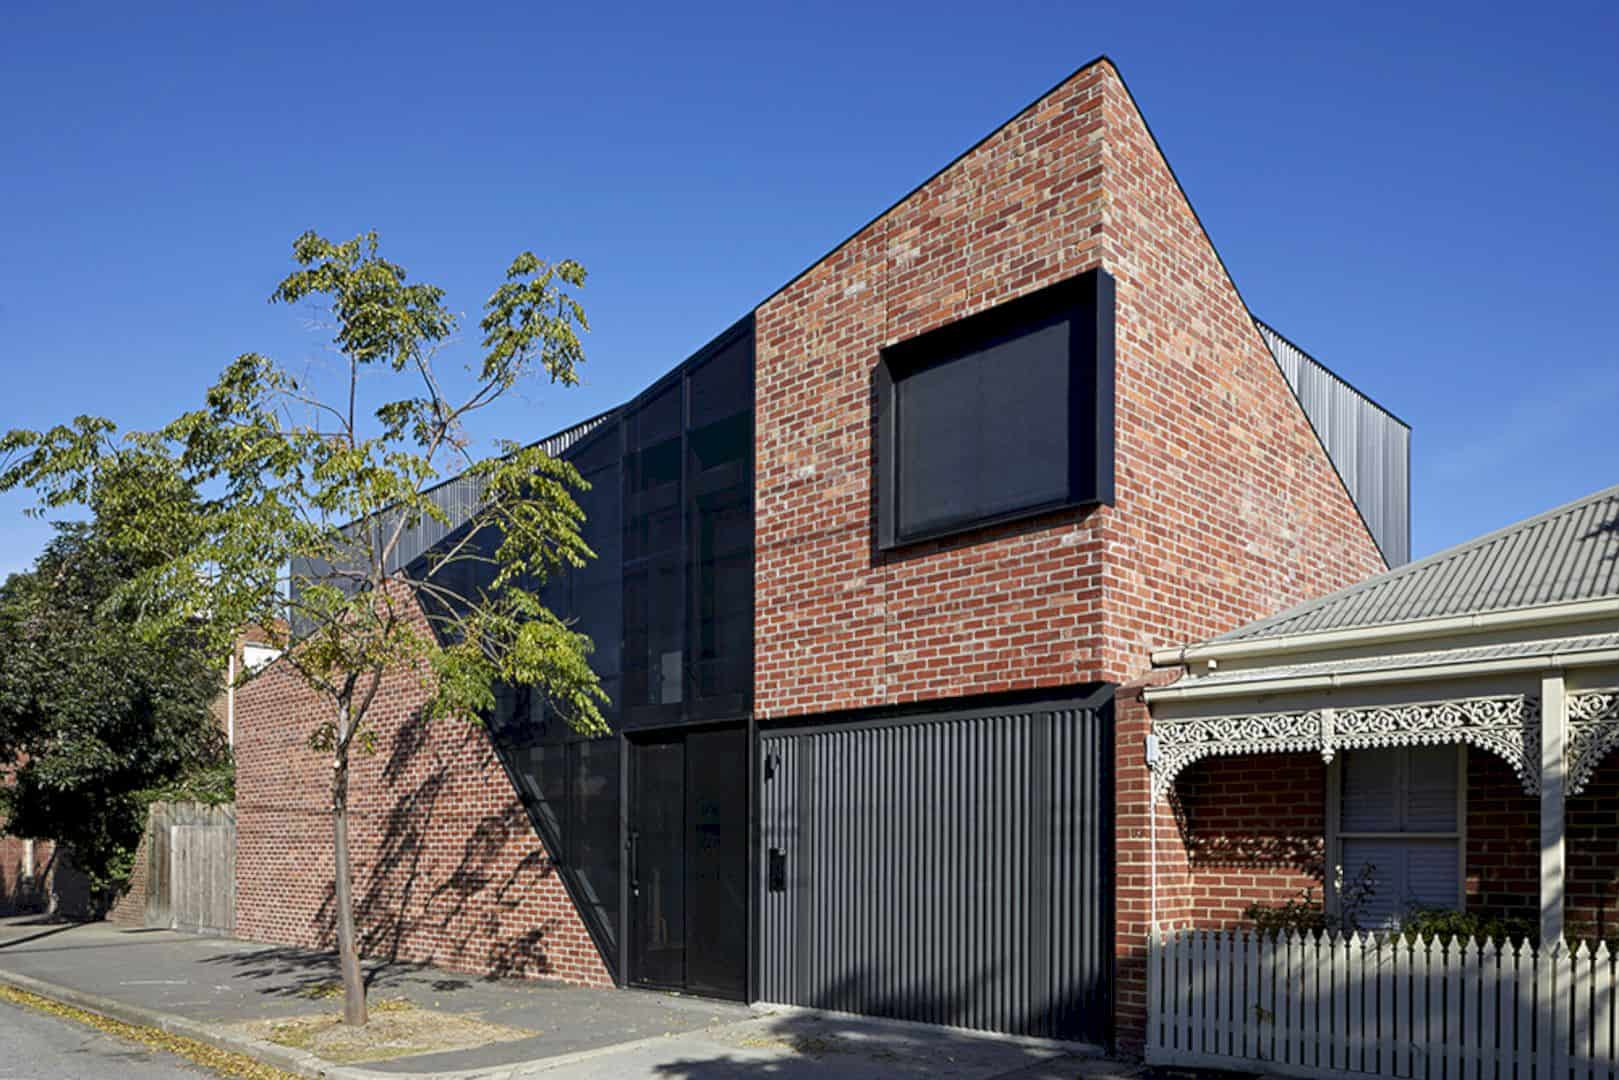 Boundary St House, Port Melbourne: A Striking, New House with Recycled Brickwork and Strong, Angular Lines